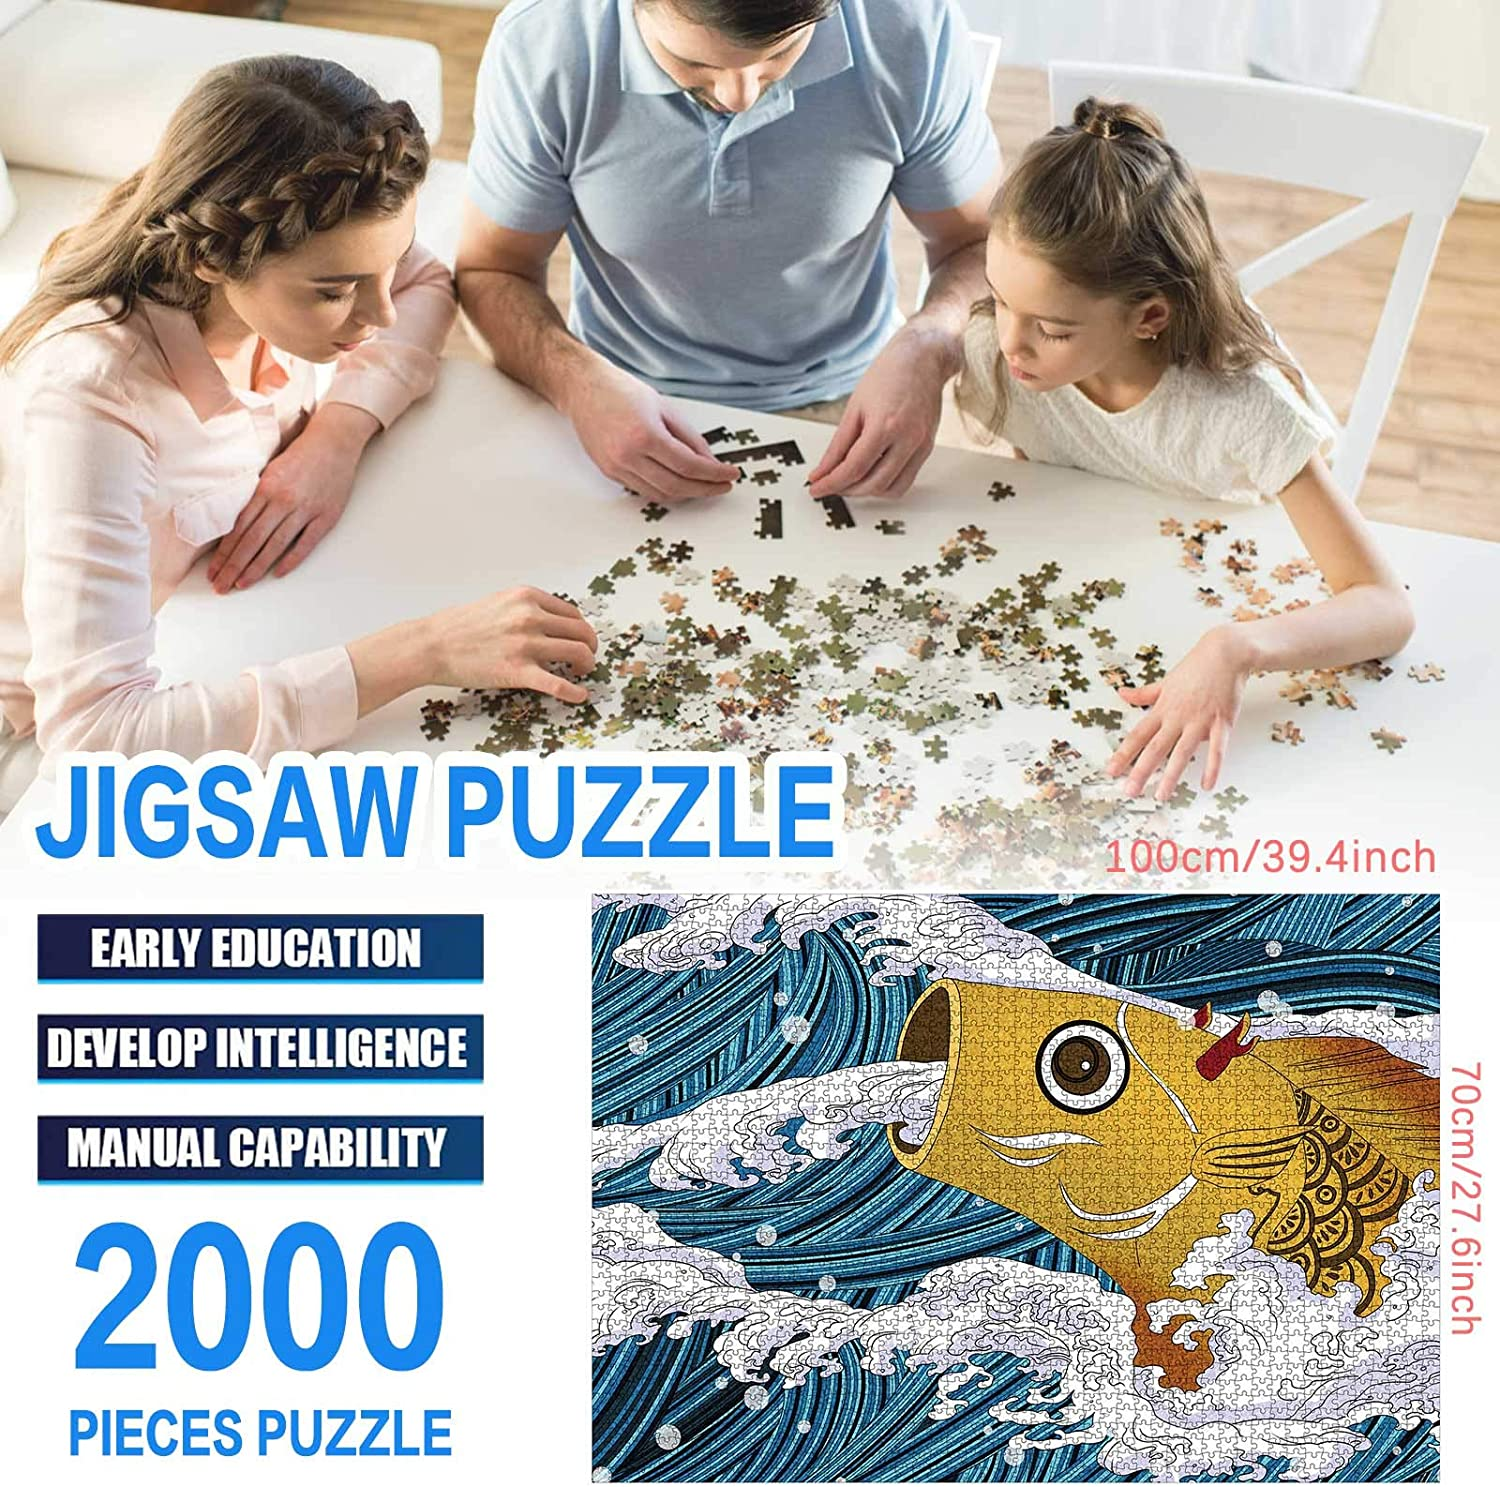 Home Fun 2000 Piece Jigsaw Puzzles for Adults 2000 Piece Adult Puzzles Jigsaw Puzzles 2000 Pieces for Adults Kids Toys Game